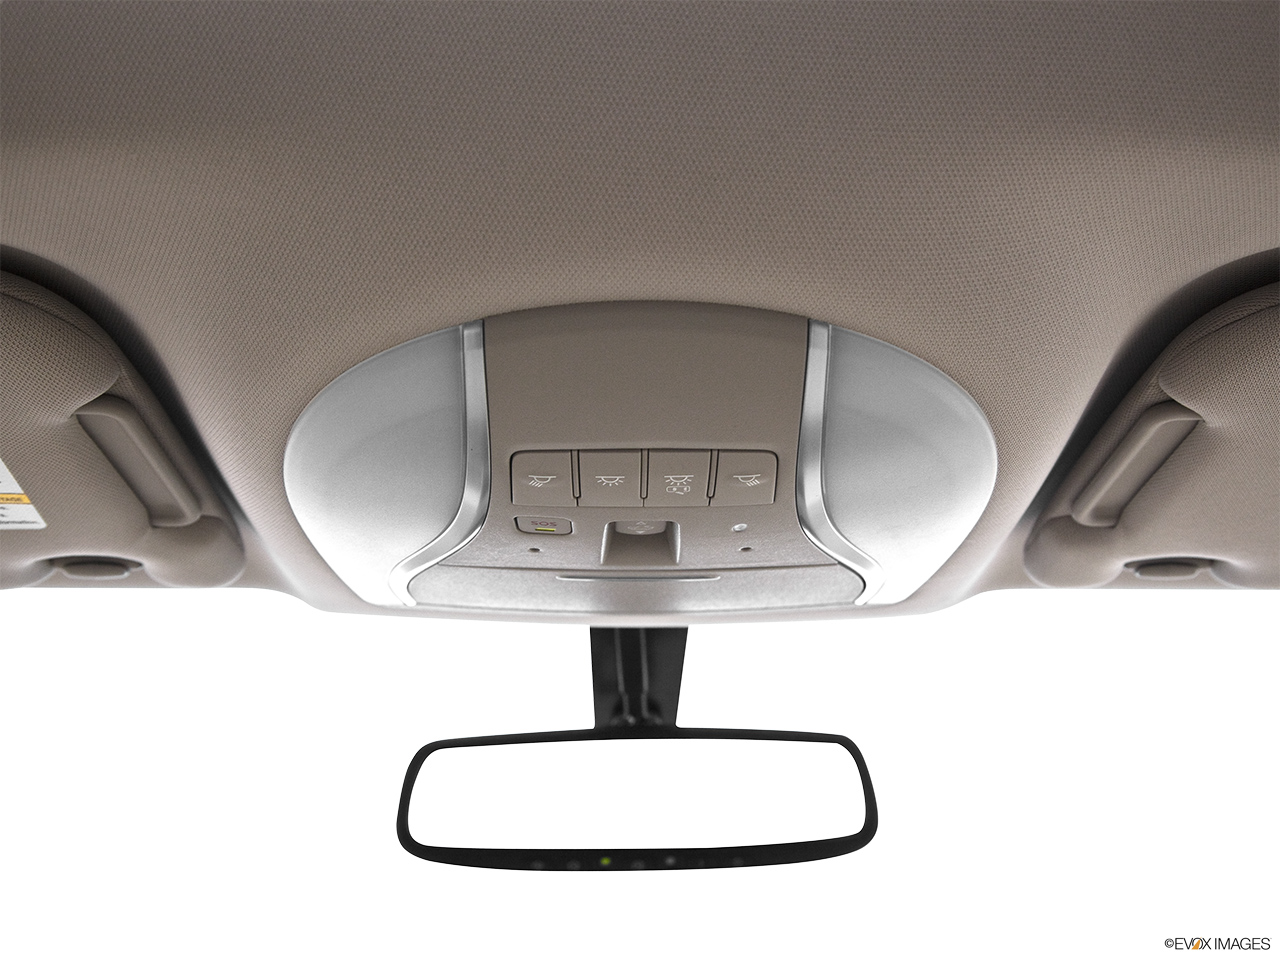 2013 Infiniti JX JX35 Courtesy lamps/ceiling controls.